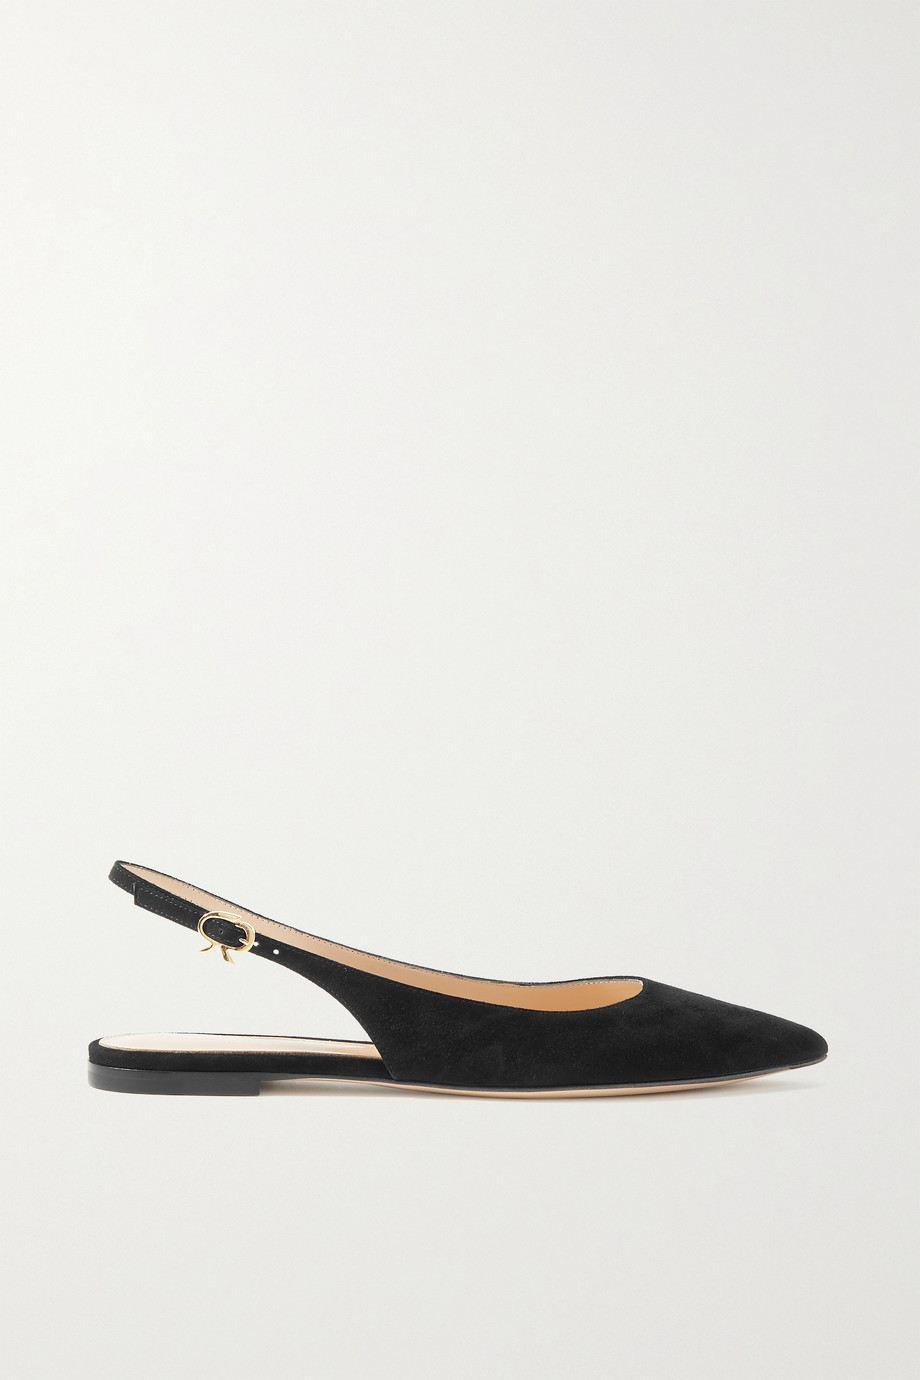 GIANVITO ROSSI Katty suede slingback point-toe flats